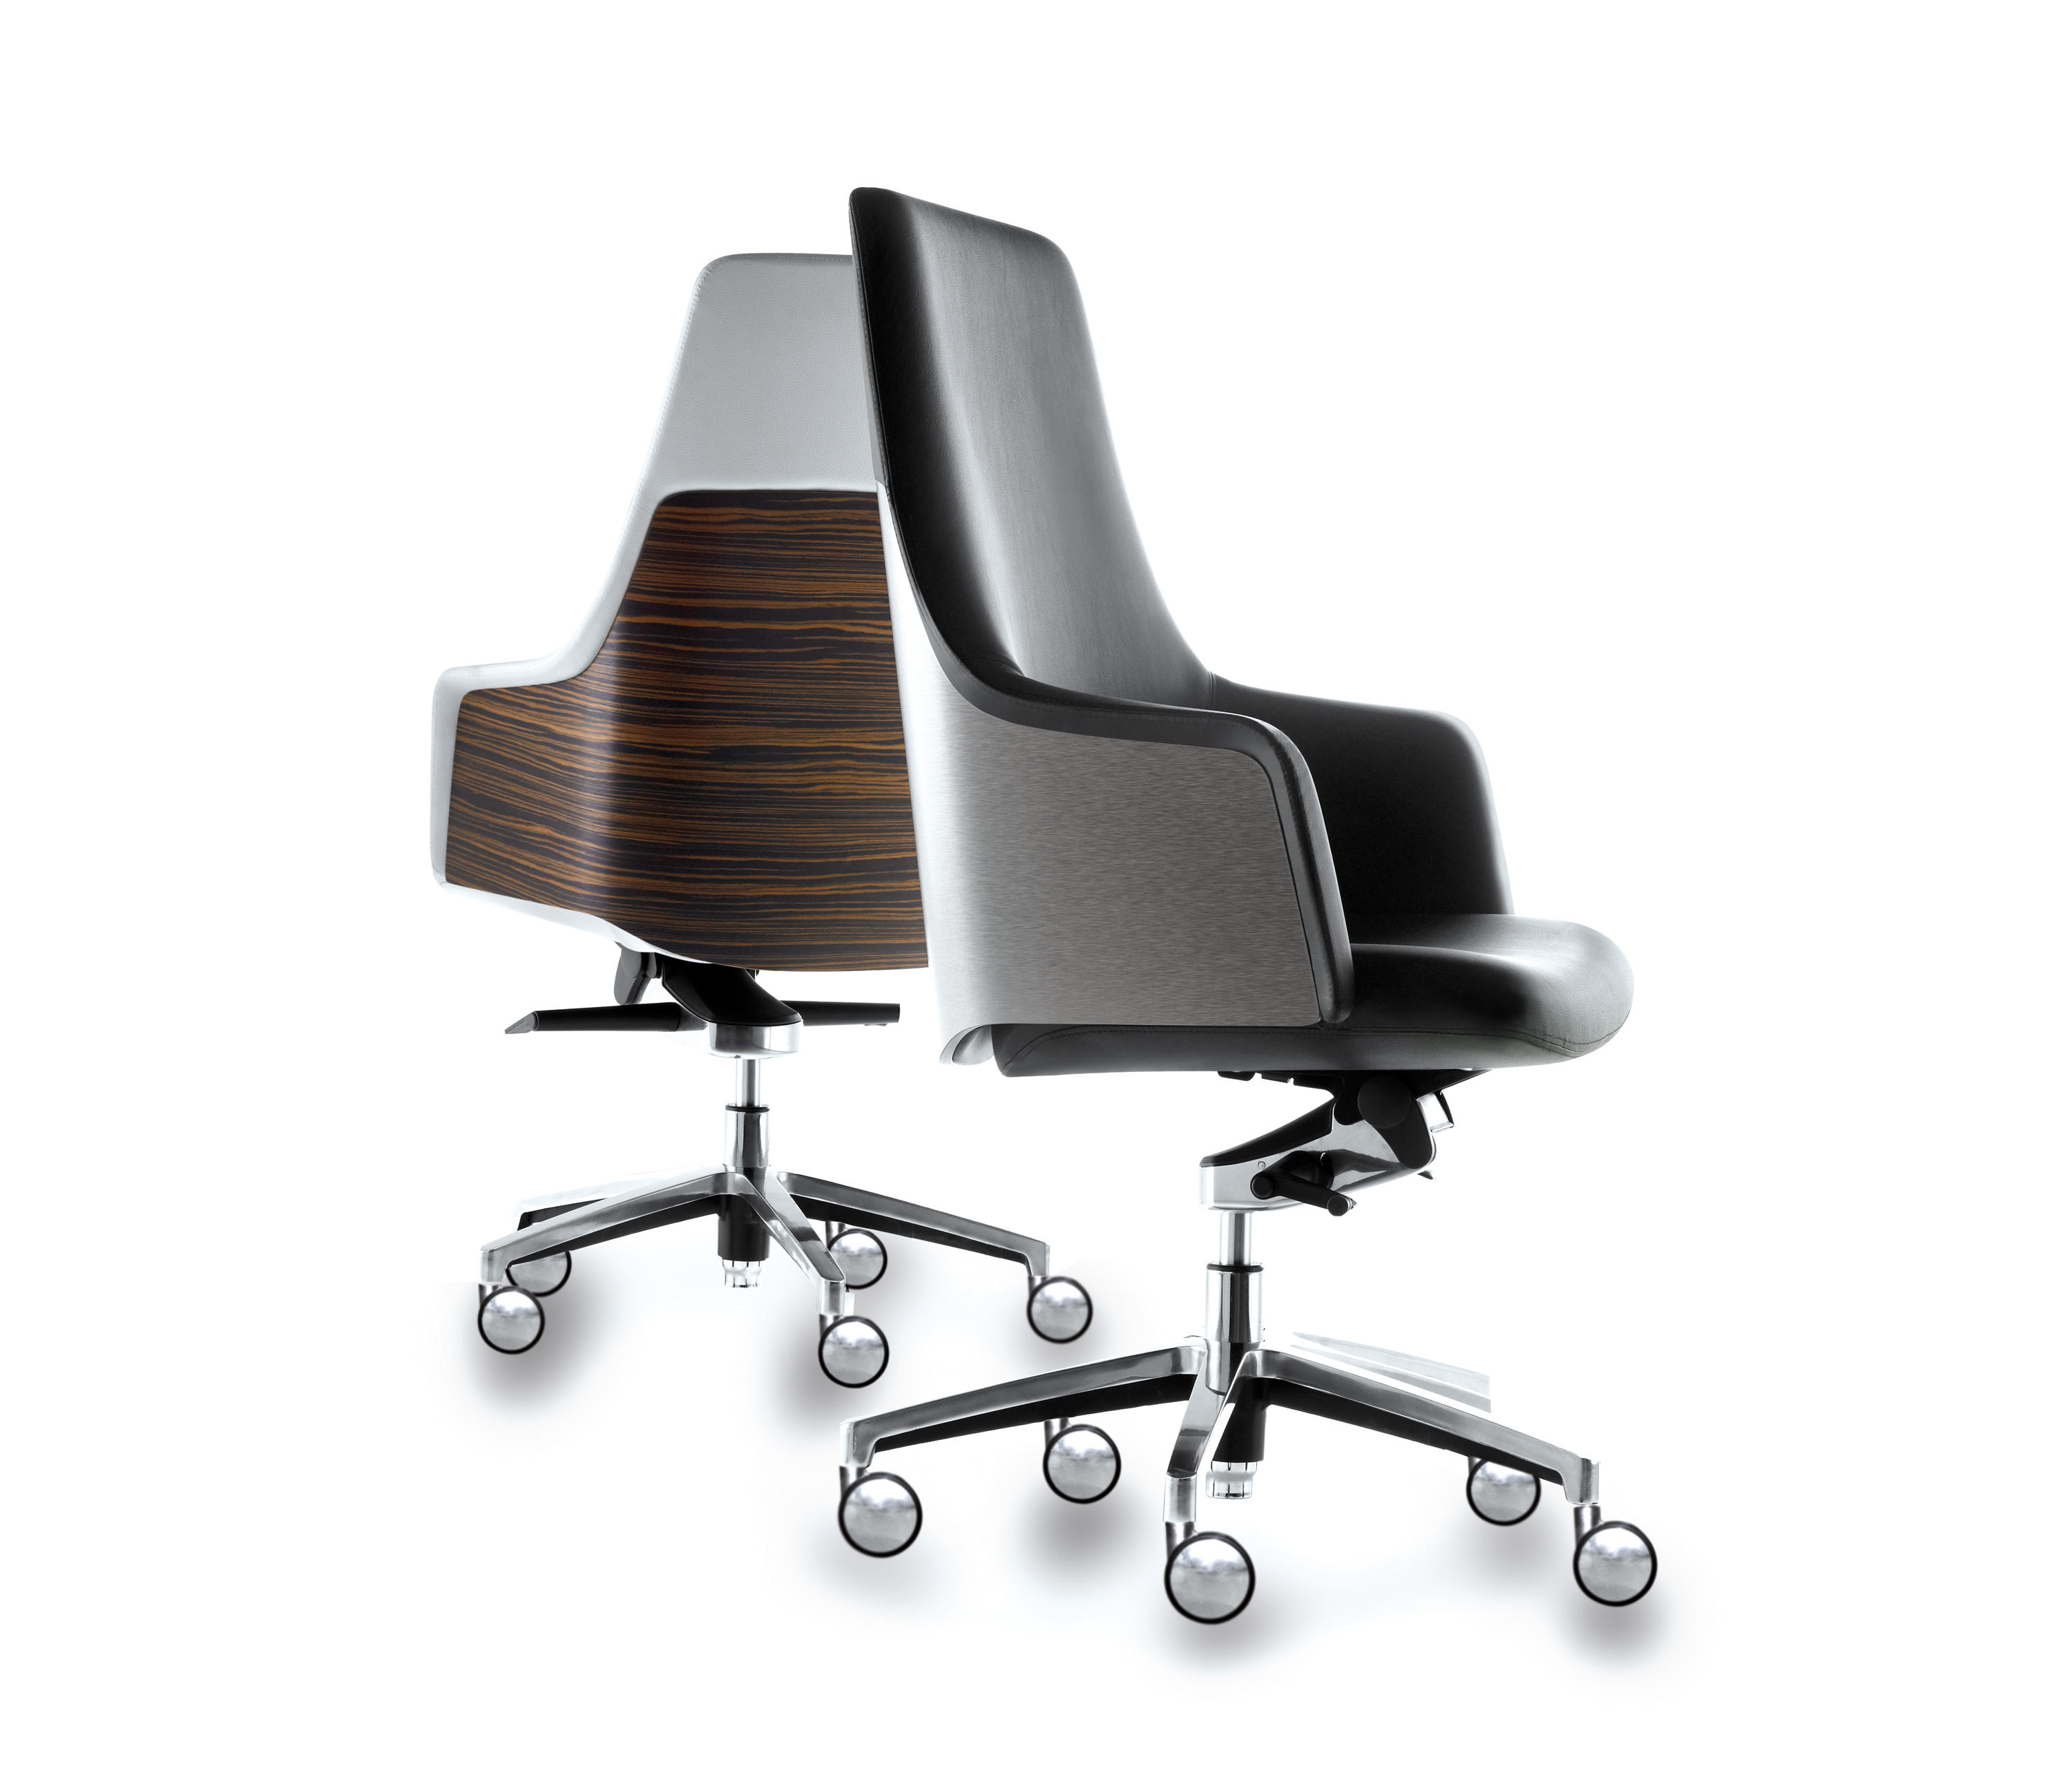 Modern Chairs Top 5 Luxury Fabric Brands Exhibiting At: CUORE - Office Chairs From Forma 5